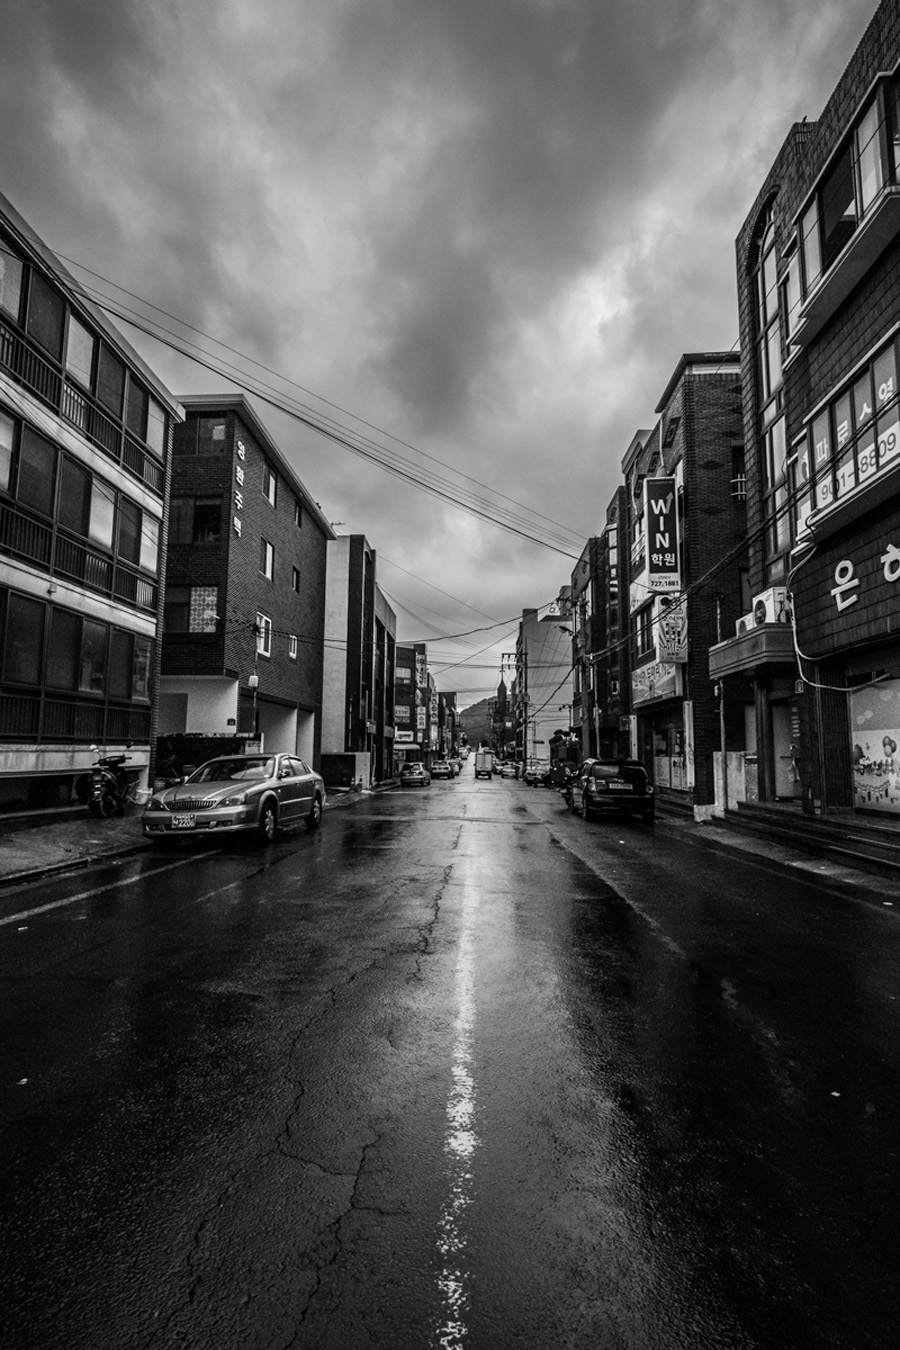 Shot of a street in Korea shot with the Fuji 10-24mm wide angle lens